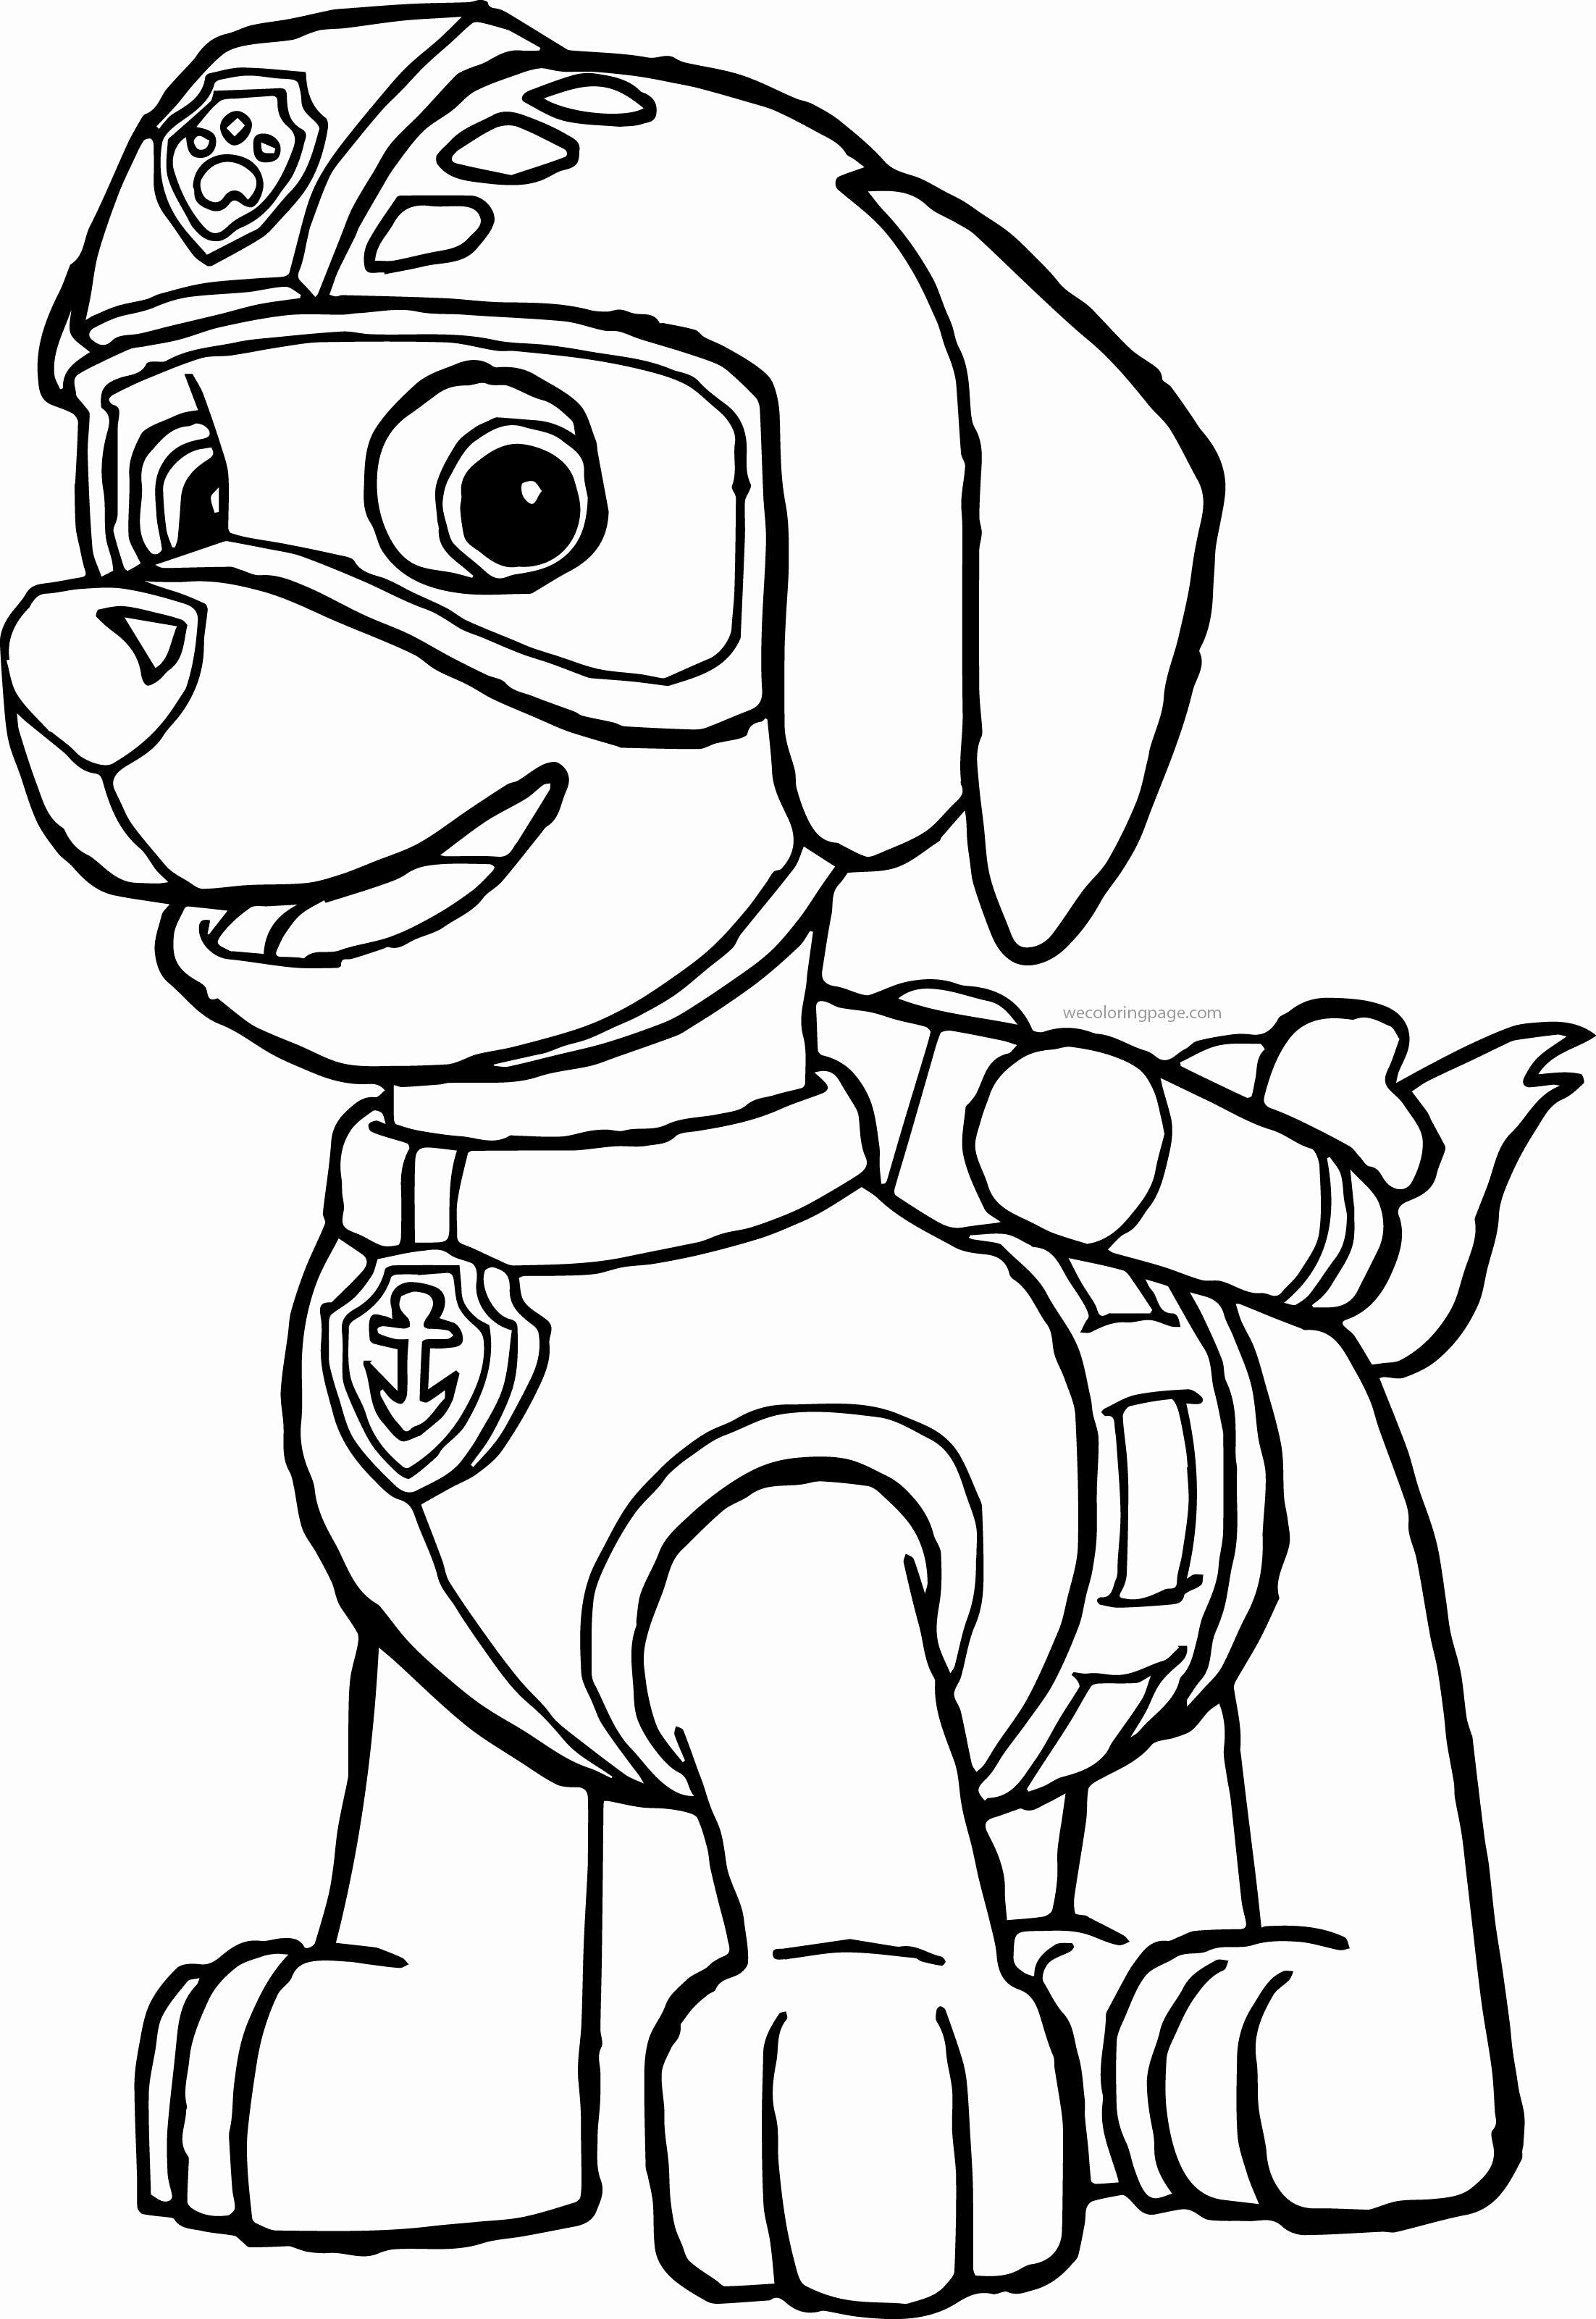 Rocky Paw Patrol Coloring Page Elegant Rocky Paw Patrol Coloring